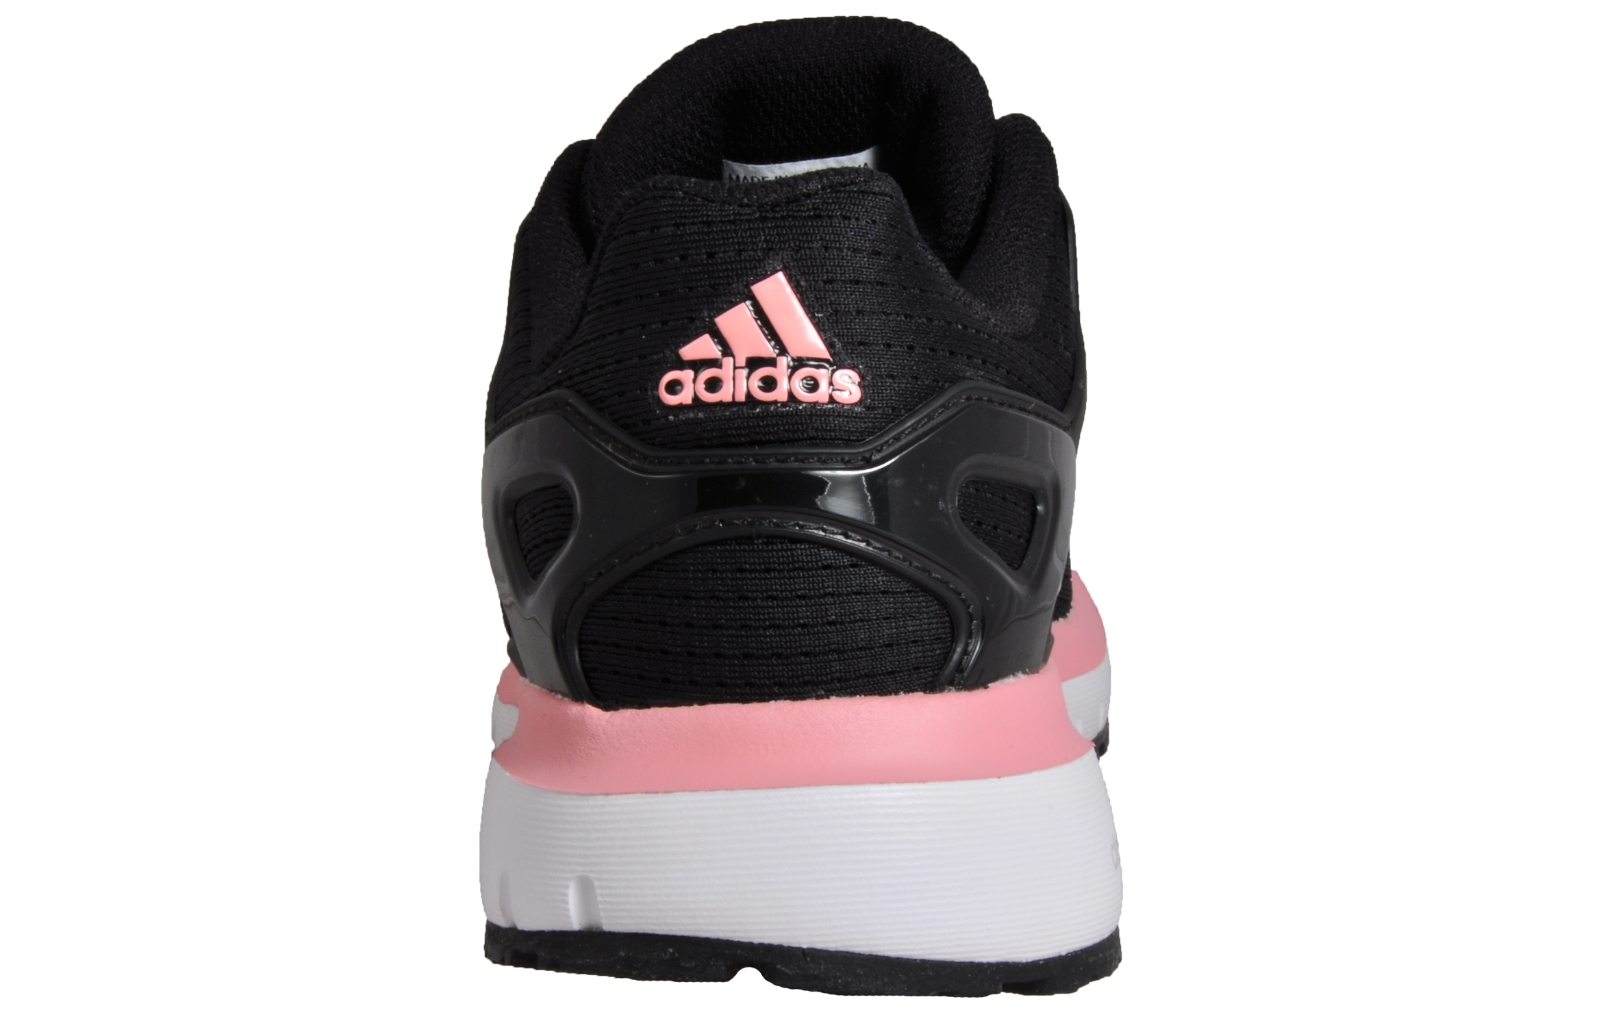 c53b7786923e9 Adidas Energy Cloud WTC Women s Running Shoes Fitness Gym Fashion Trainers  Black